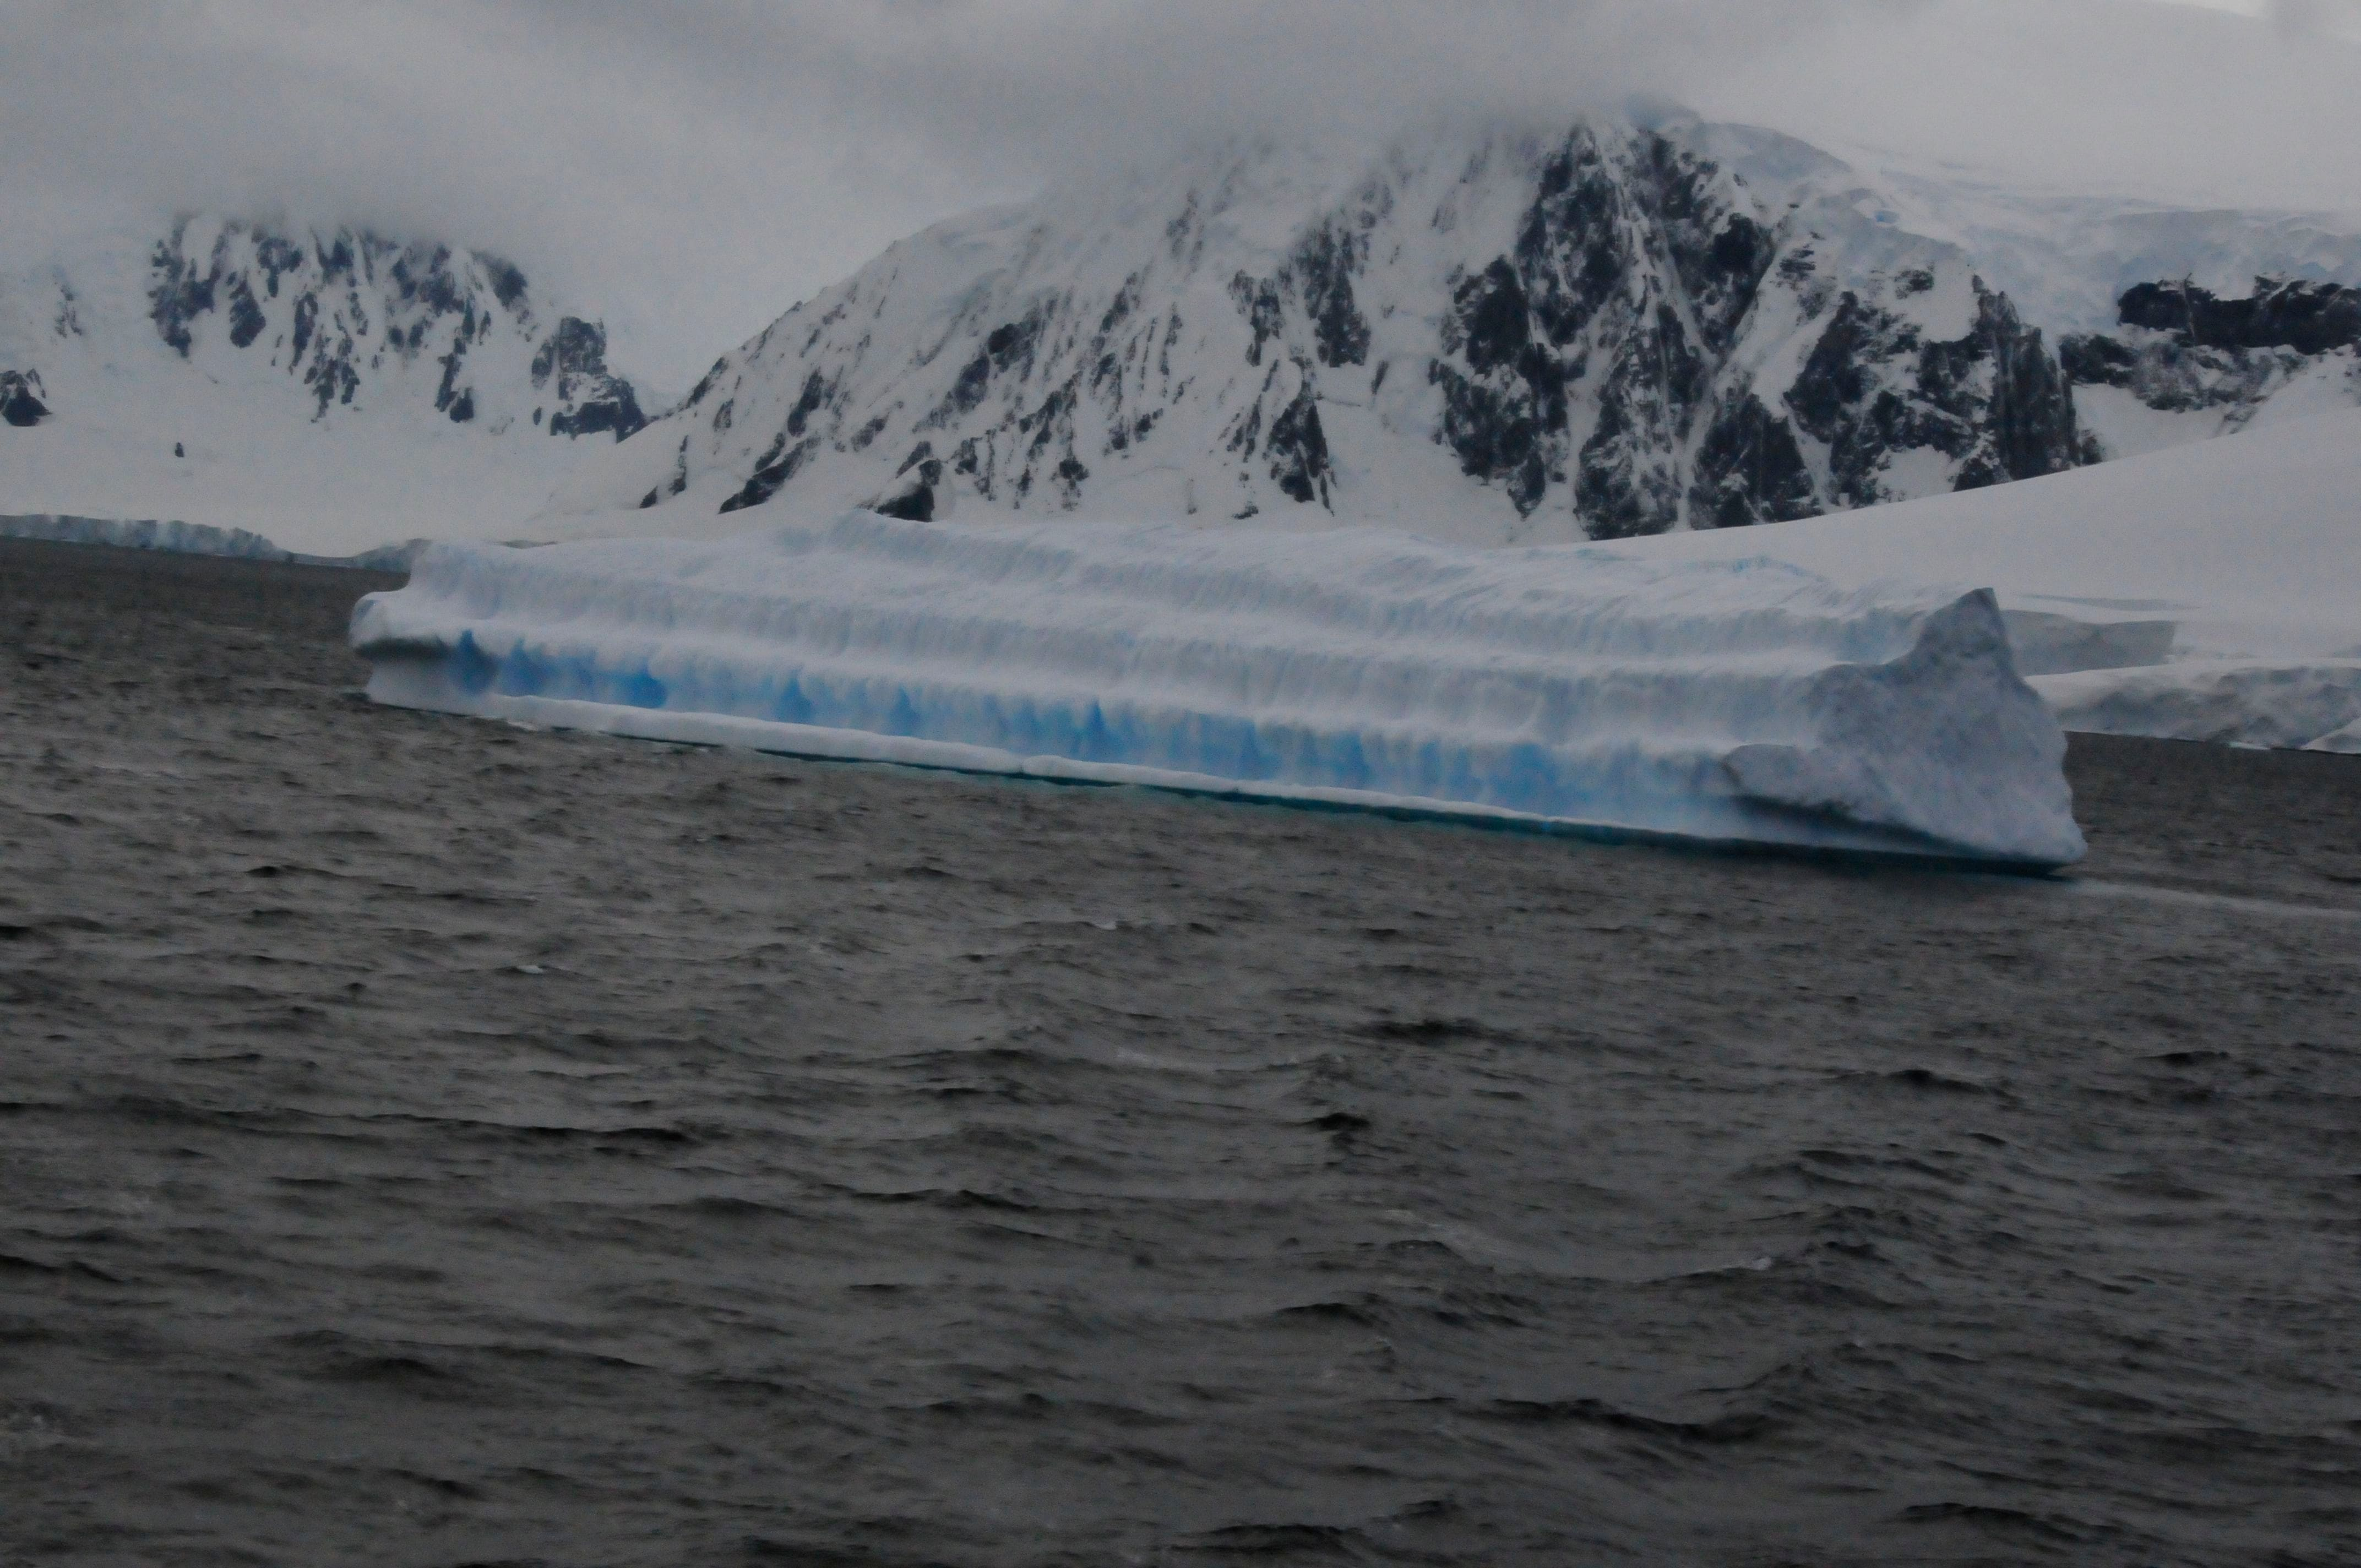 bergs-as-big-as-the-ship